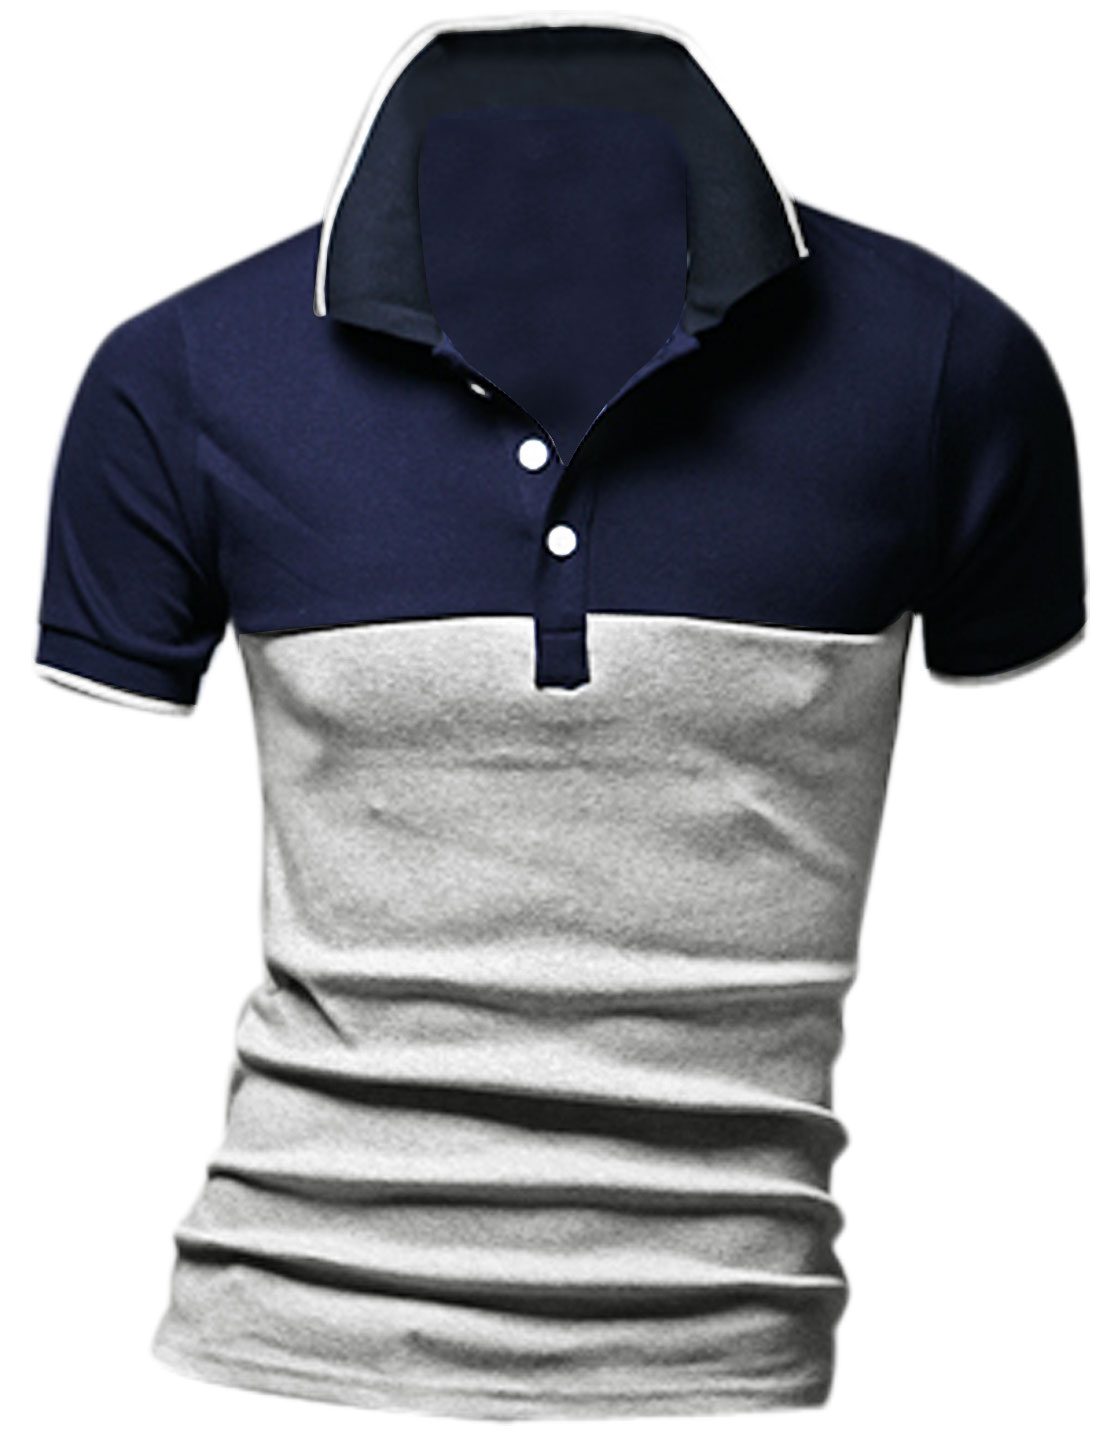 Man Point Collar Short Sleeve Ribbed Collar Cuffs Polo Shirt Light Gray M